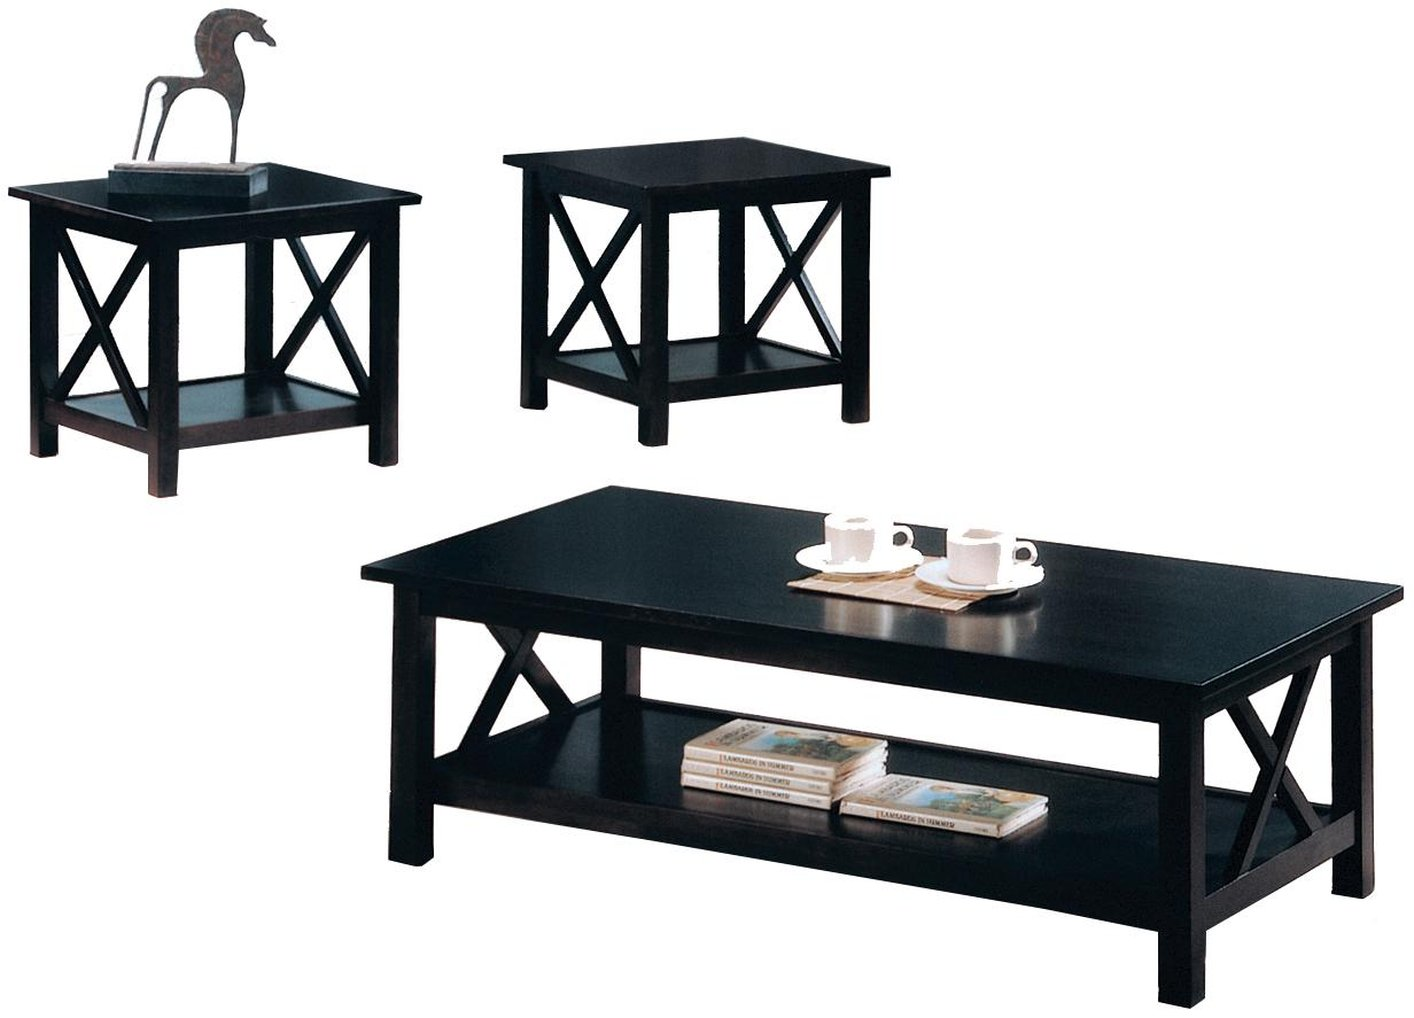 Black Wood Coffee Table Set  sc 1 st  Steal-A-Sofa Furniture Outlet & Black Wood Coffee Table Set - Steal-A-Sofa Furniture Outlet Los ...